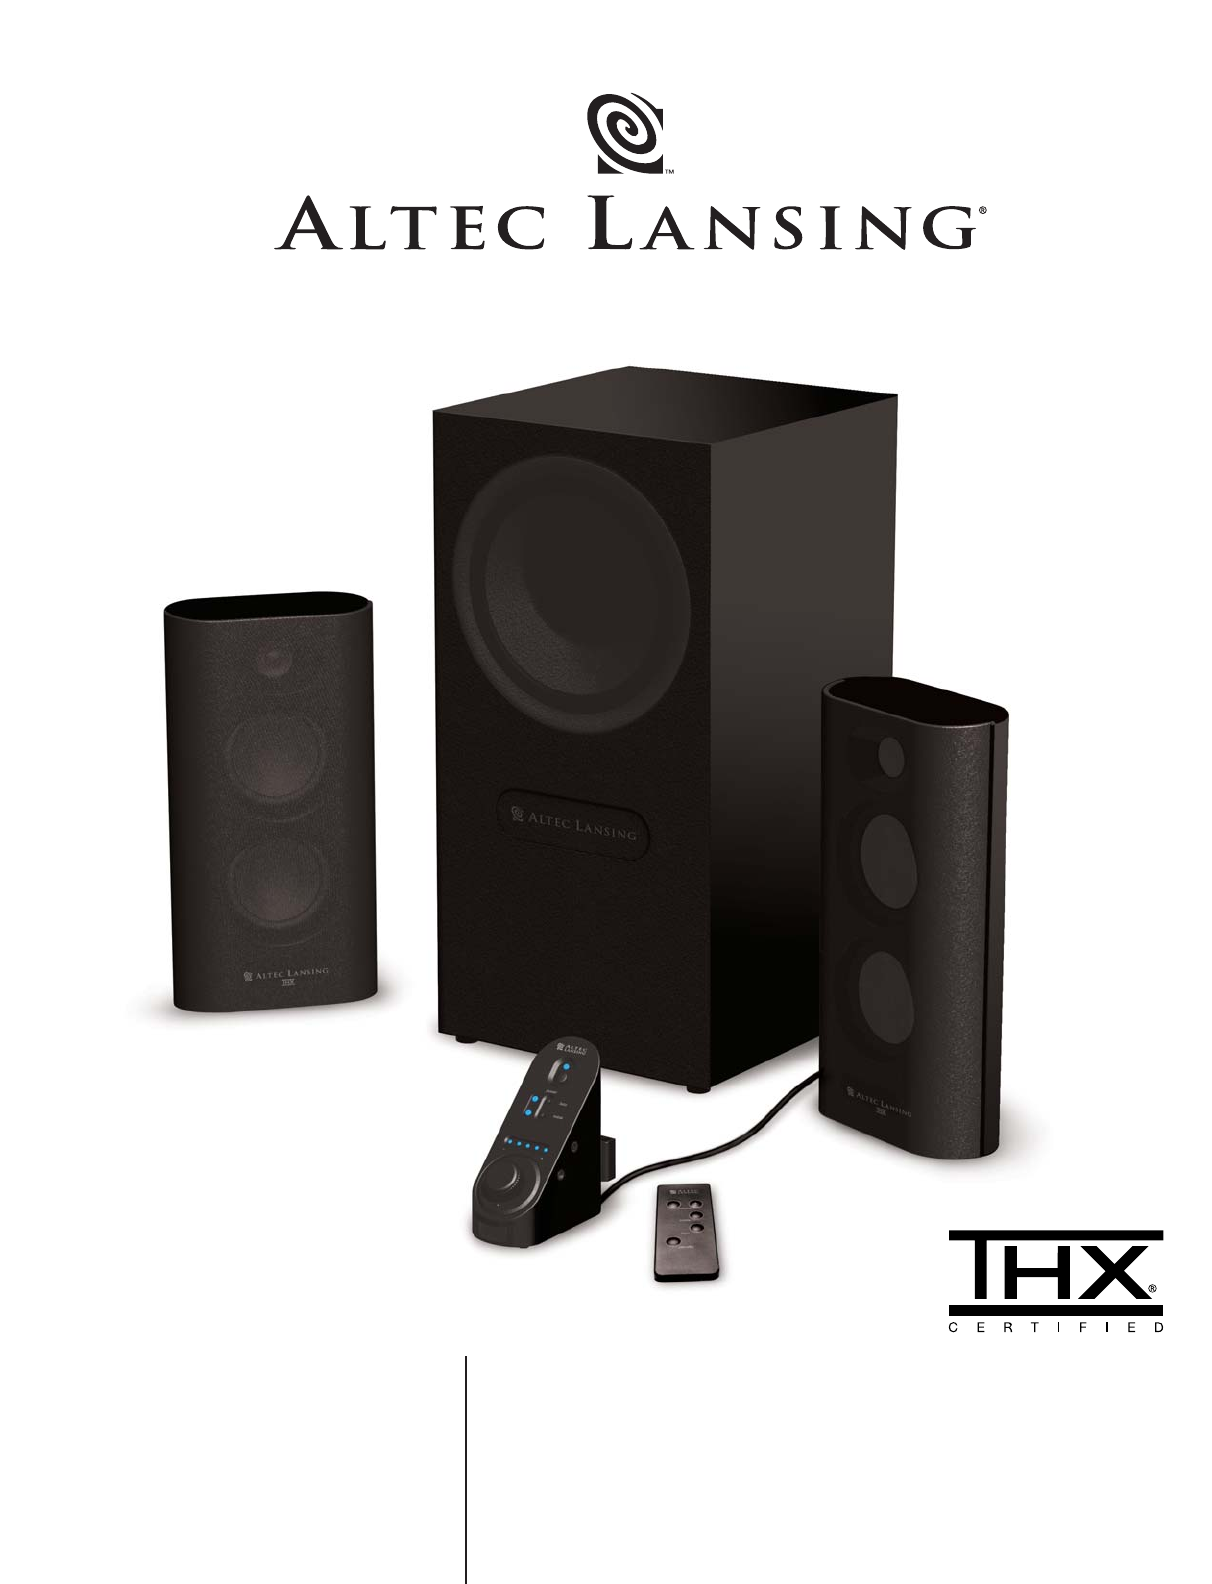 b5d18112 b908 4876 bc38 a41bb6073780 bg1 altec lansing speaker mx5021 user guide manualsonline com Wiring a Surround Sound System at crackthecode.co